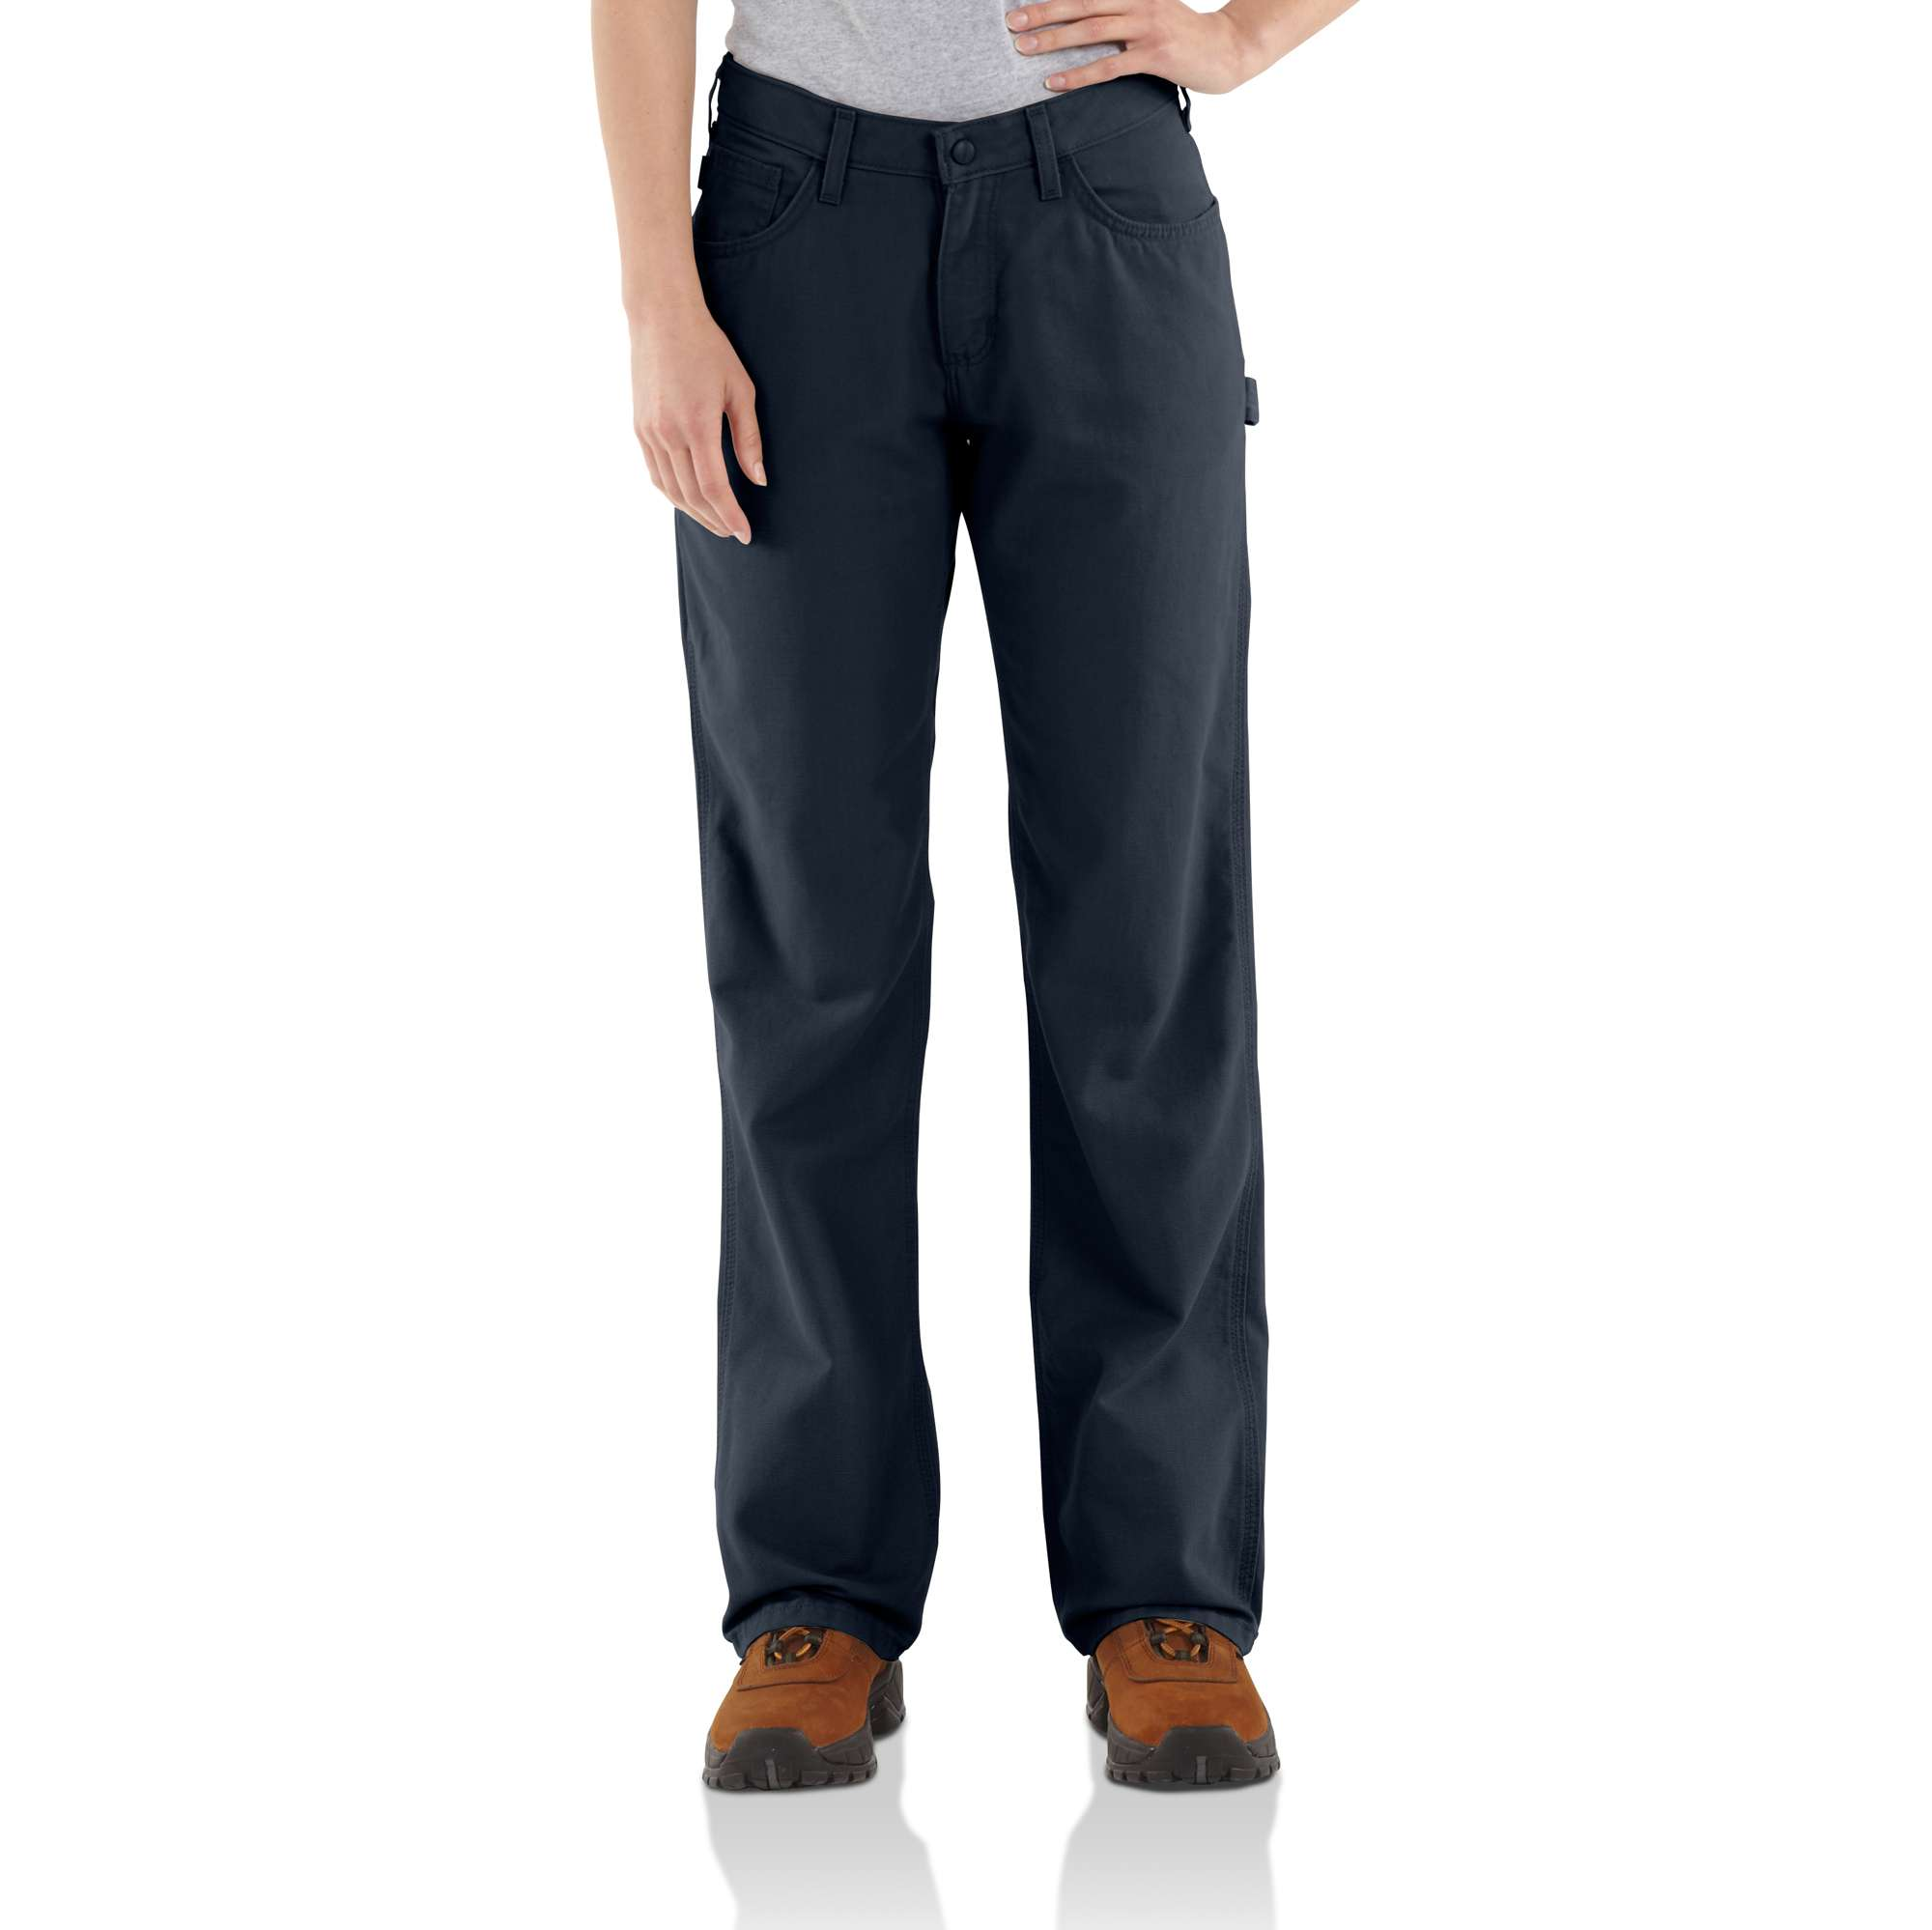 Carhartt Women Flame-resistant Loose Fit Midweight Canvas Jean | Carhartt